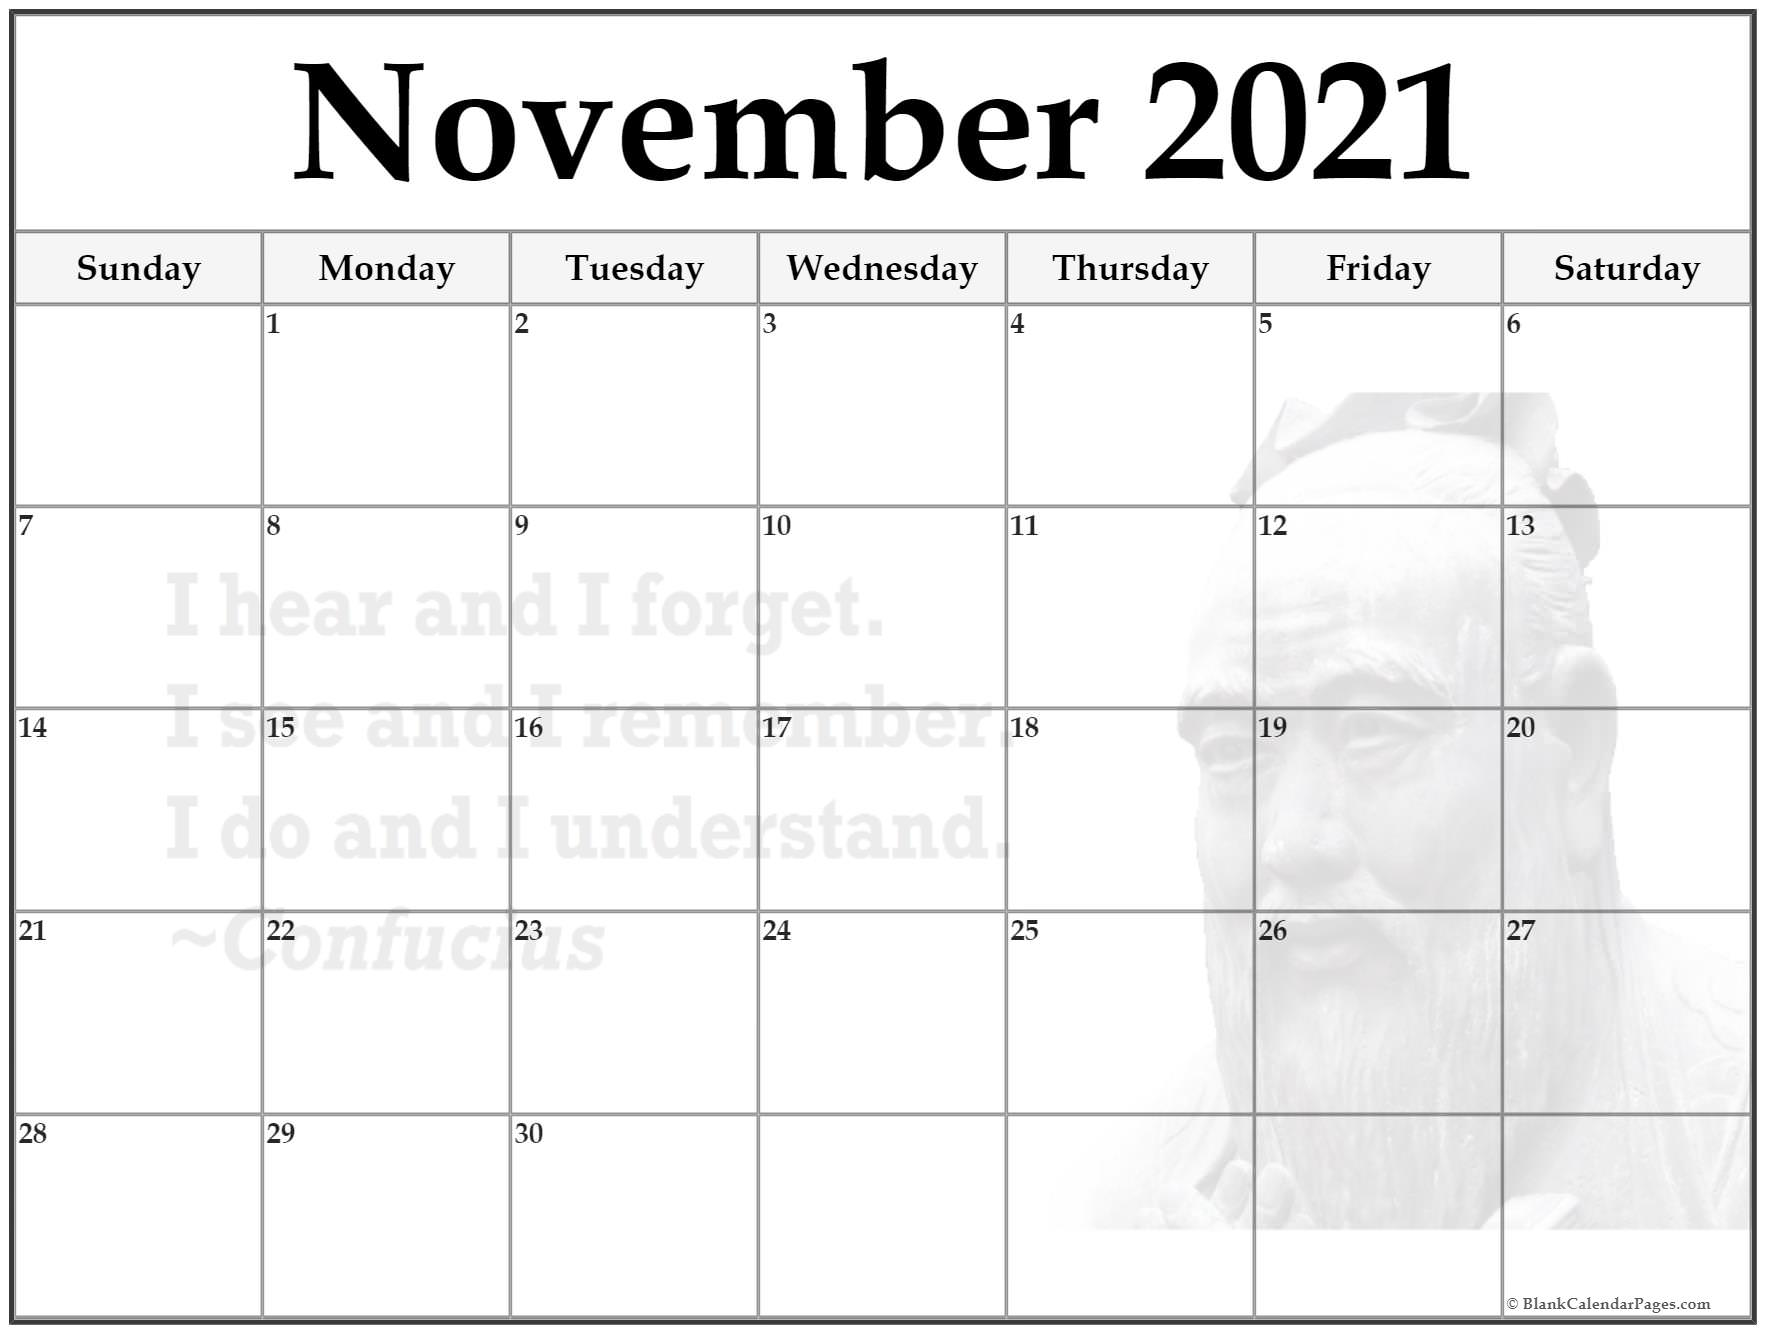 November 2021 confucius calendar. I hear and I forget.I see and I remember.I do and I understand.~Confucius